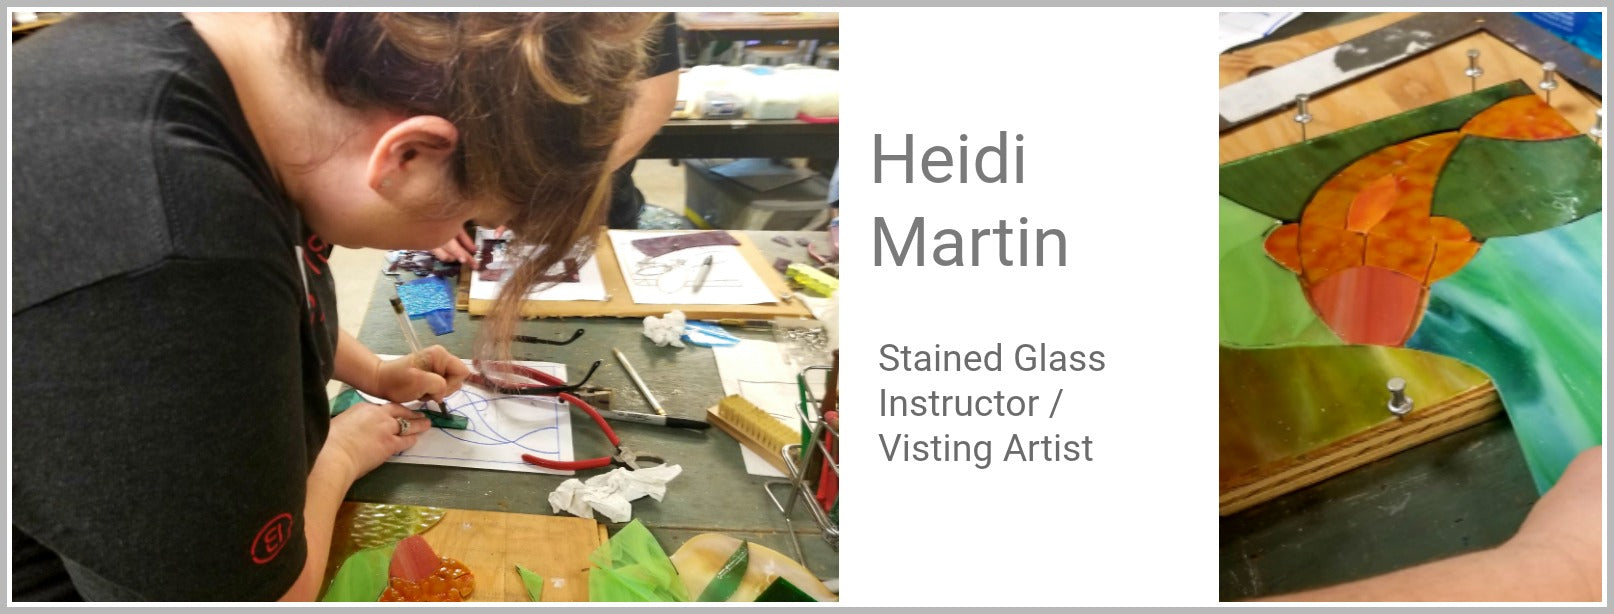 Heidi Martin Stained Glass Visiting Artist